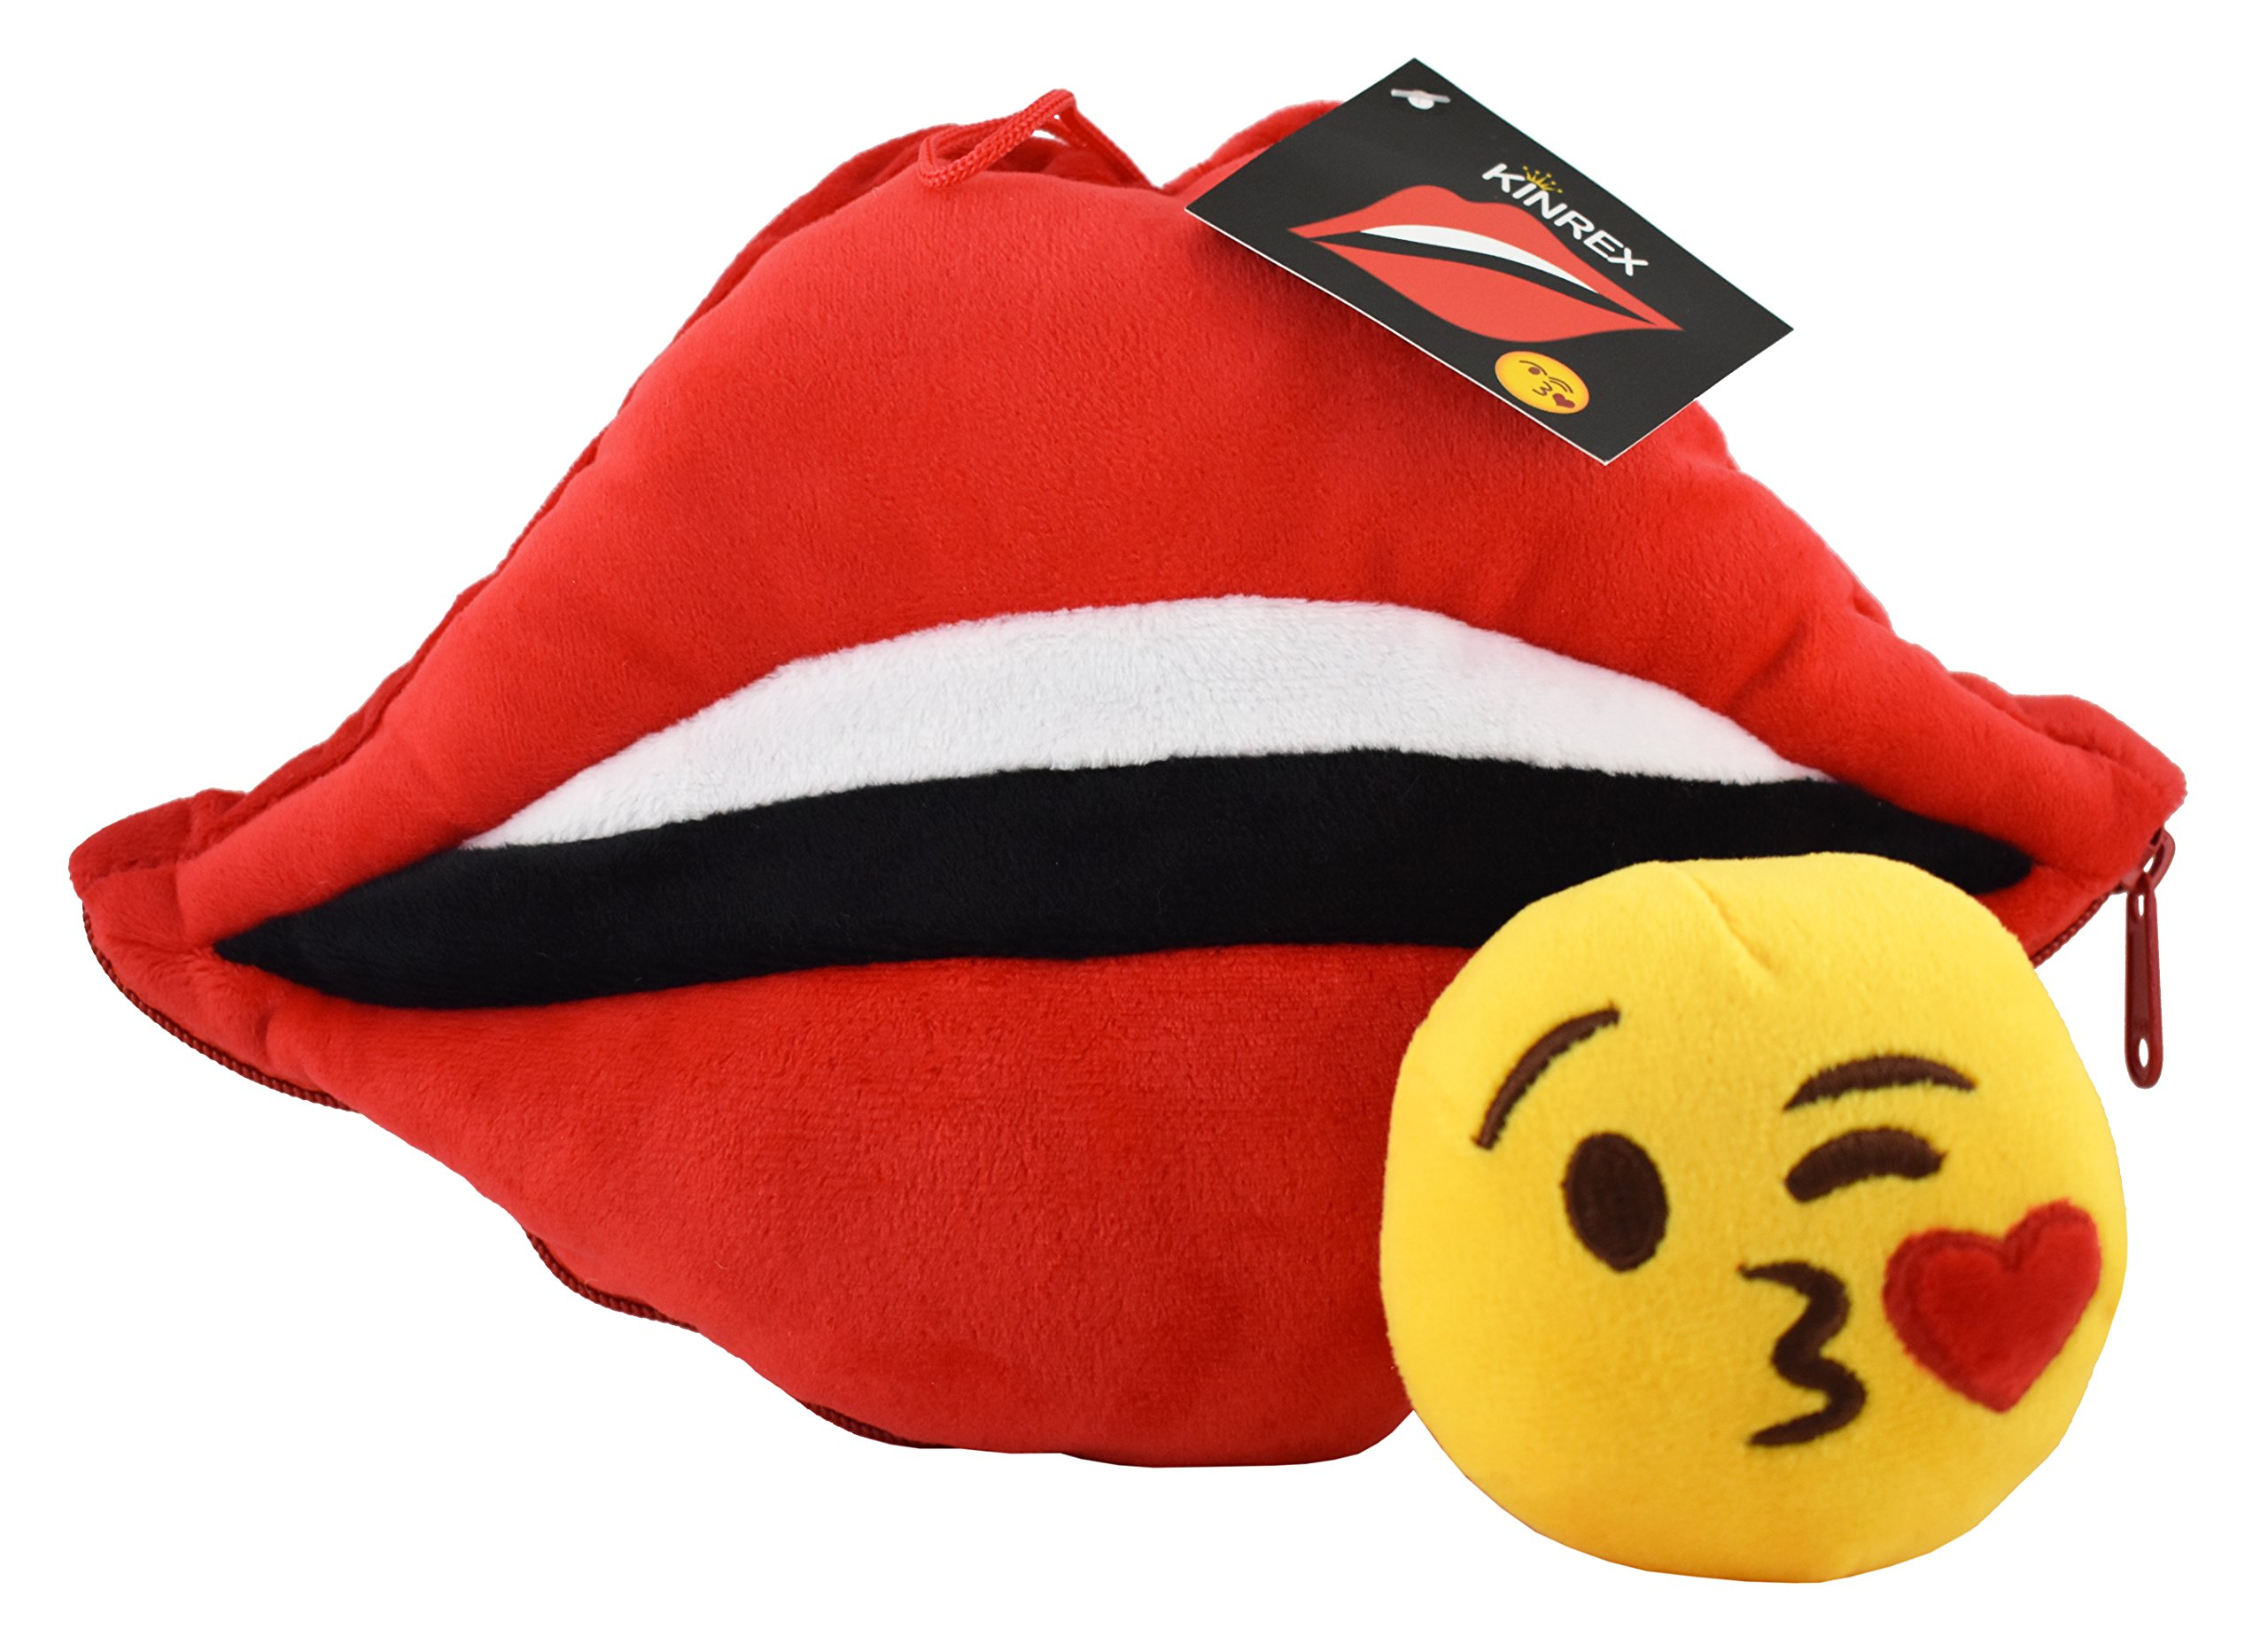 KINREX Soft Plush Red Lip Pillow Toy with Blow Kiss Emoji Inside - Birthday Presents for Baby, Toddler, Kids, Adults - Bed and Home Decoration - Measures 11.81'' / 30 cm. Wide